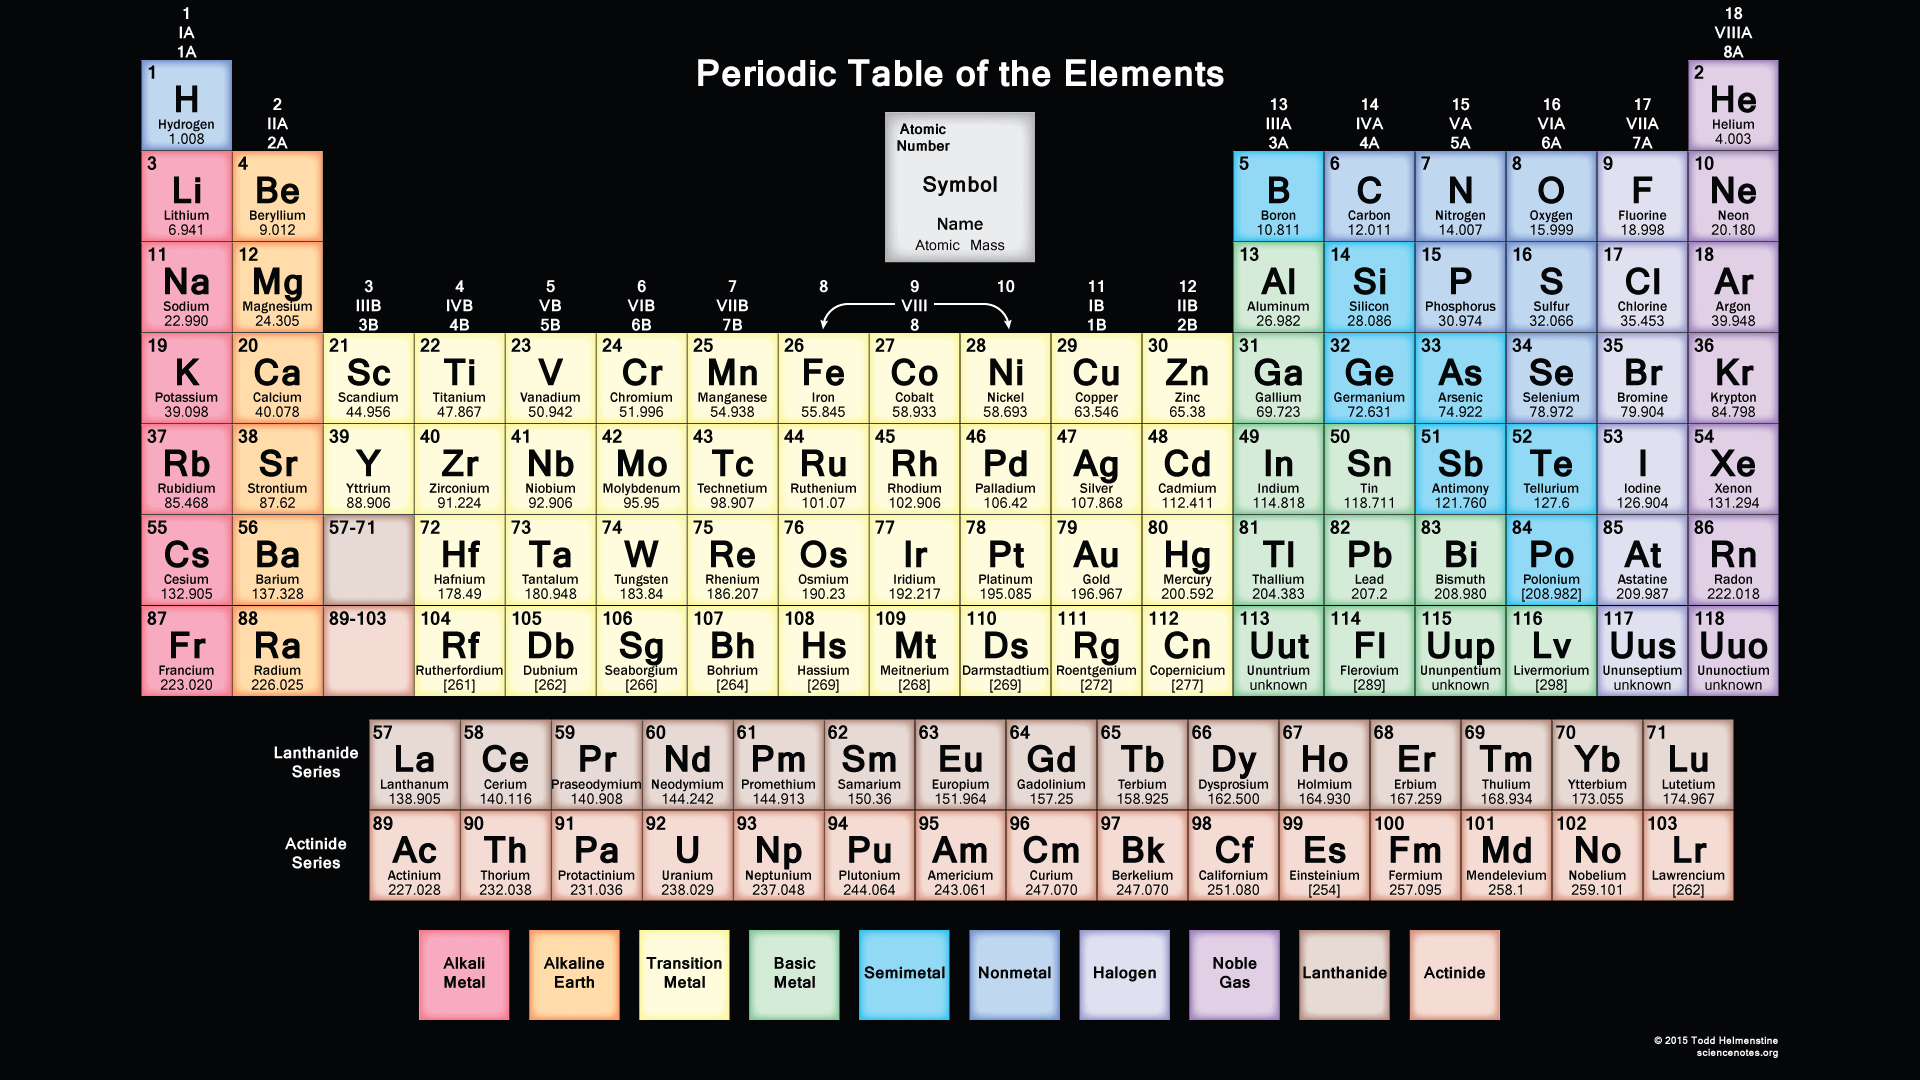 Hd periodic table wallpaper muted colors new muted periodic table black background gamestrikefo Gallery